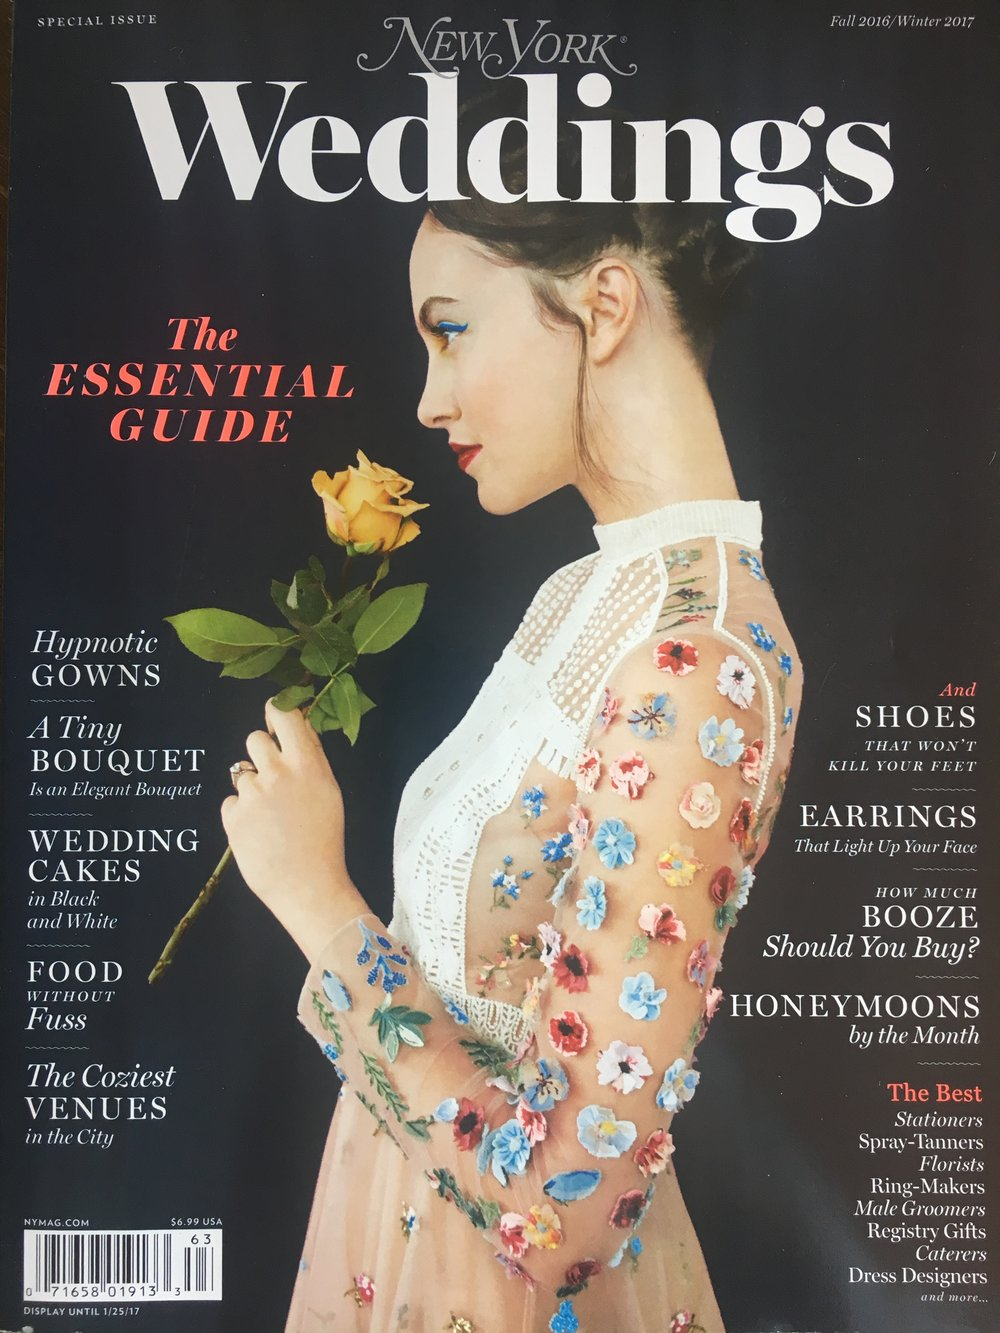 New York Magazine Weddings Fall Winter 2016 Cover.JPG